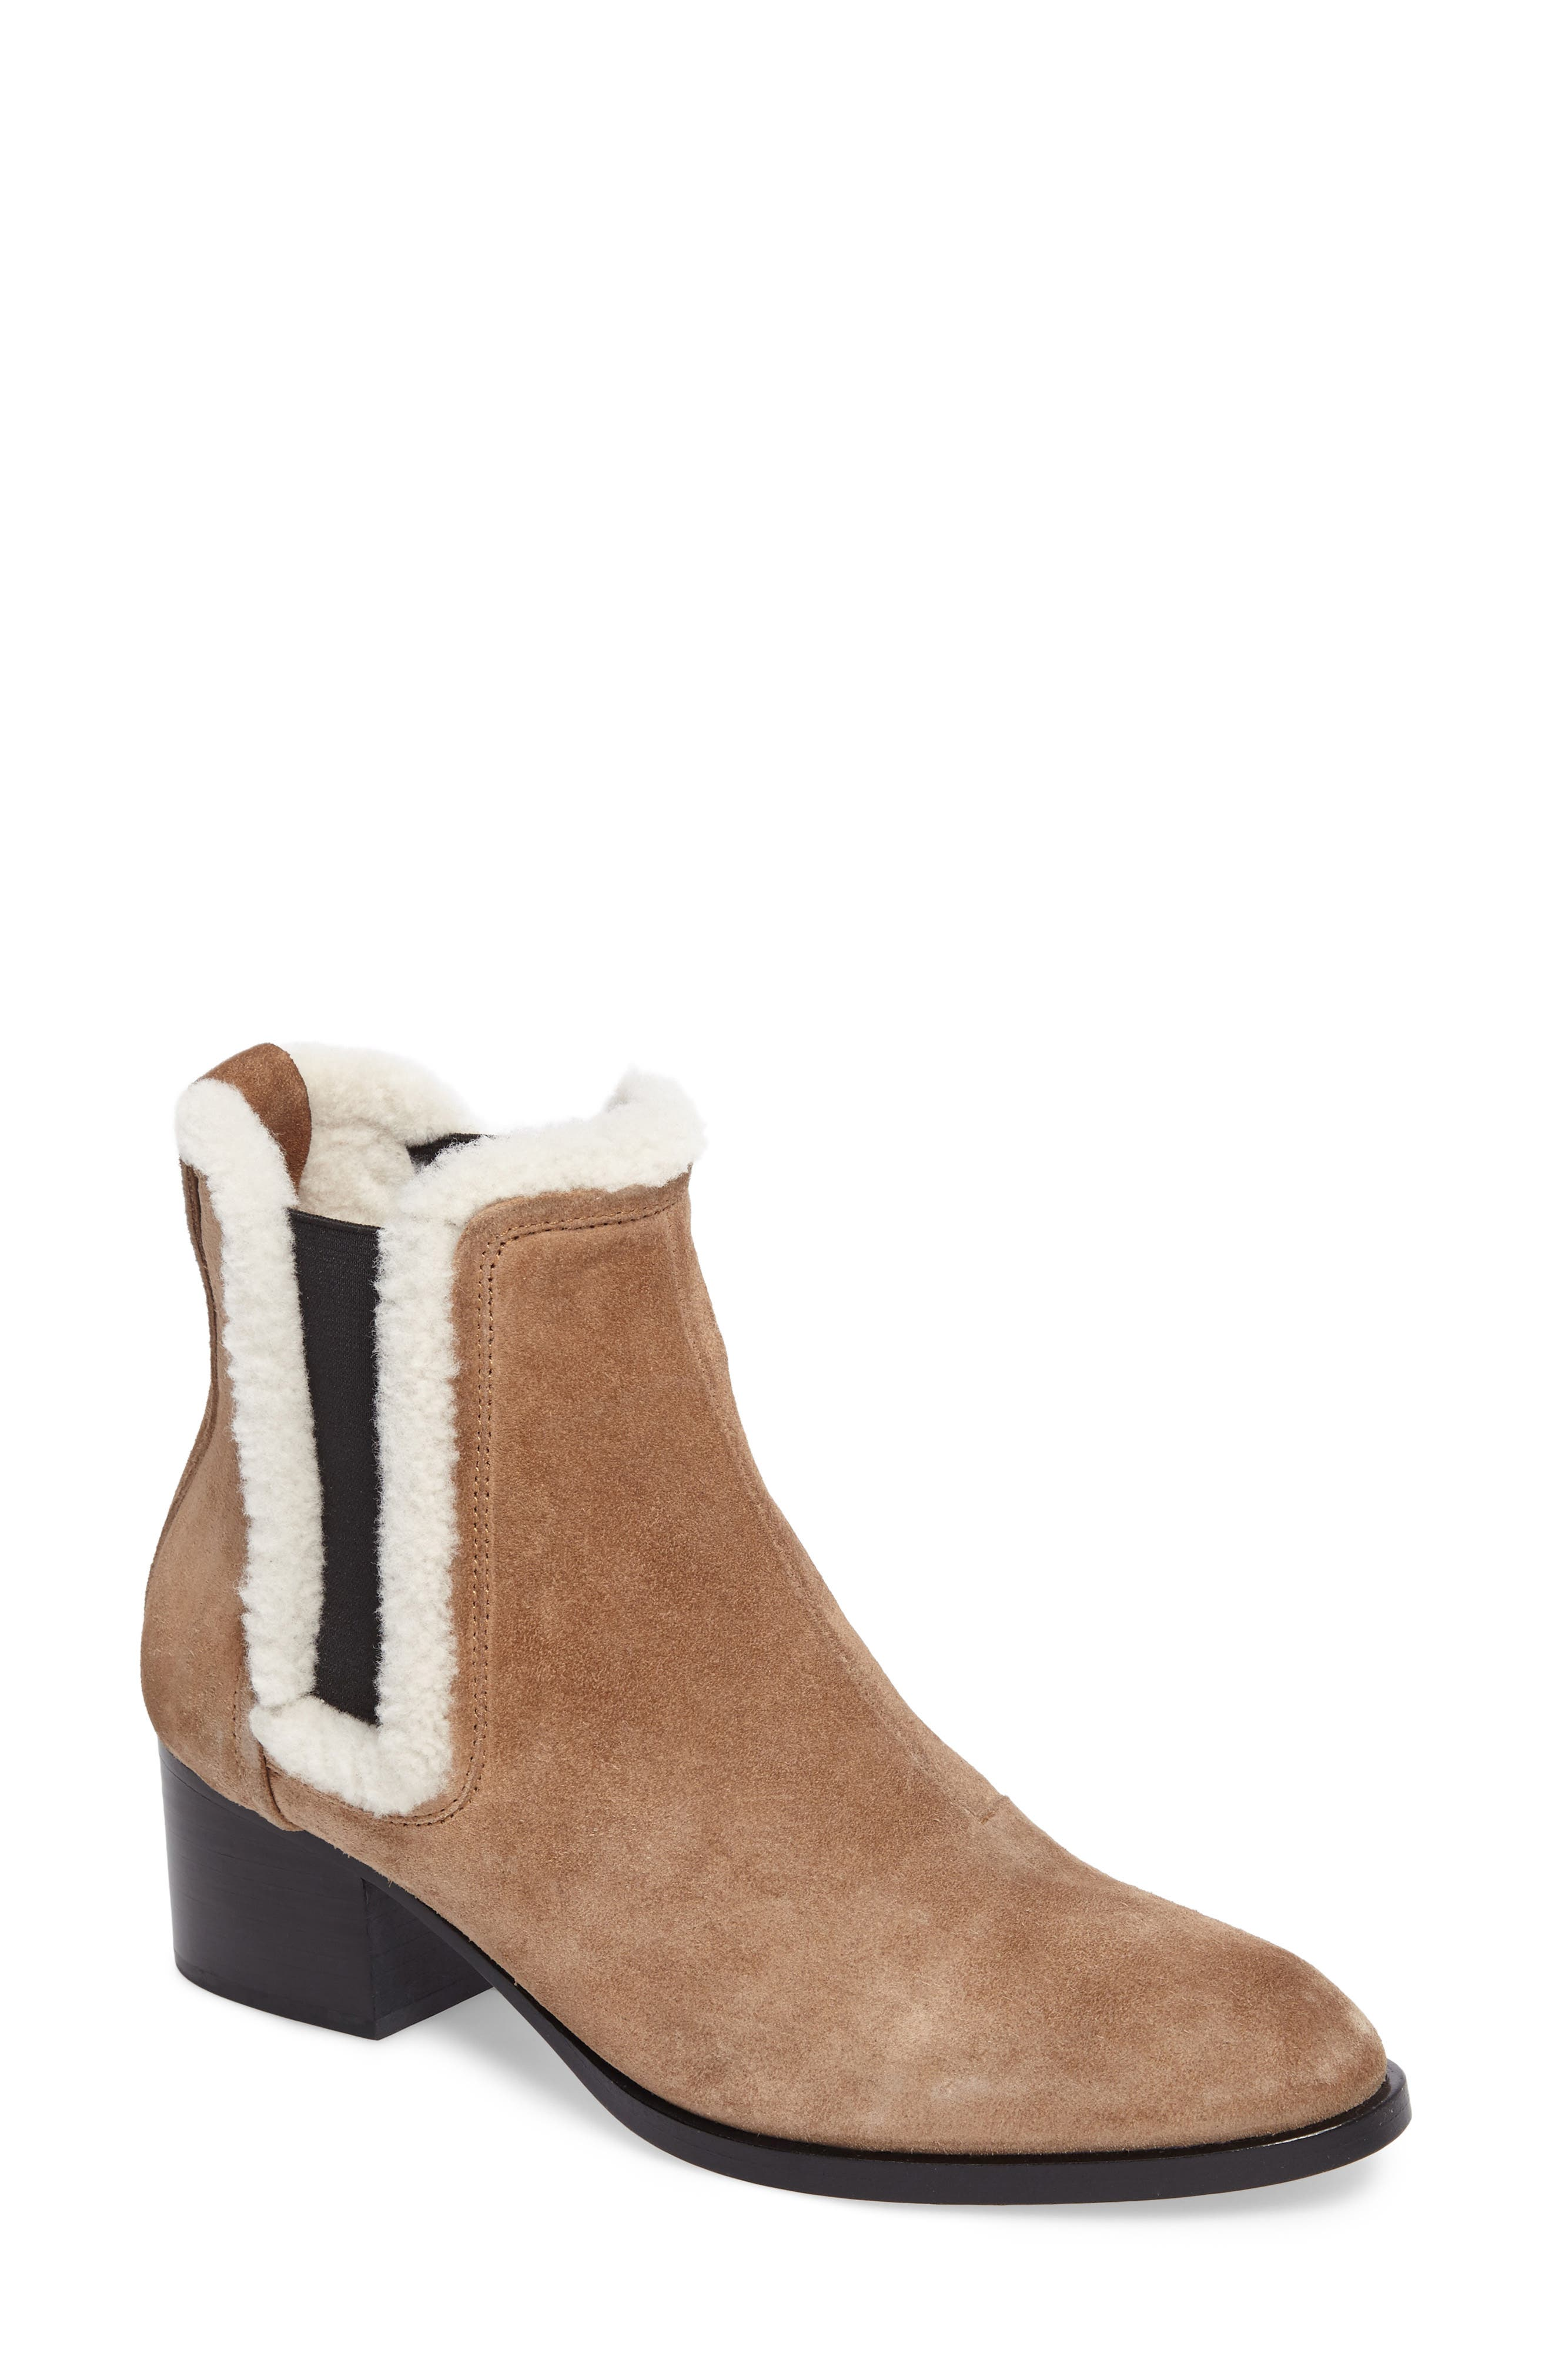 Walker Bootie with Genuine Shearling Trim,                             Main thumbnail 1, color,                             Camel